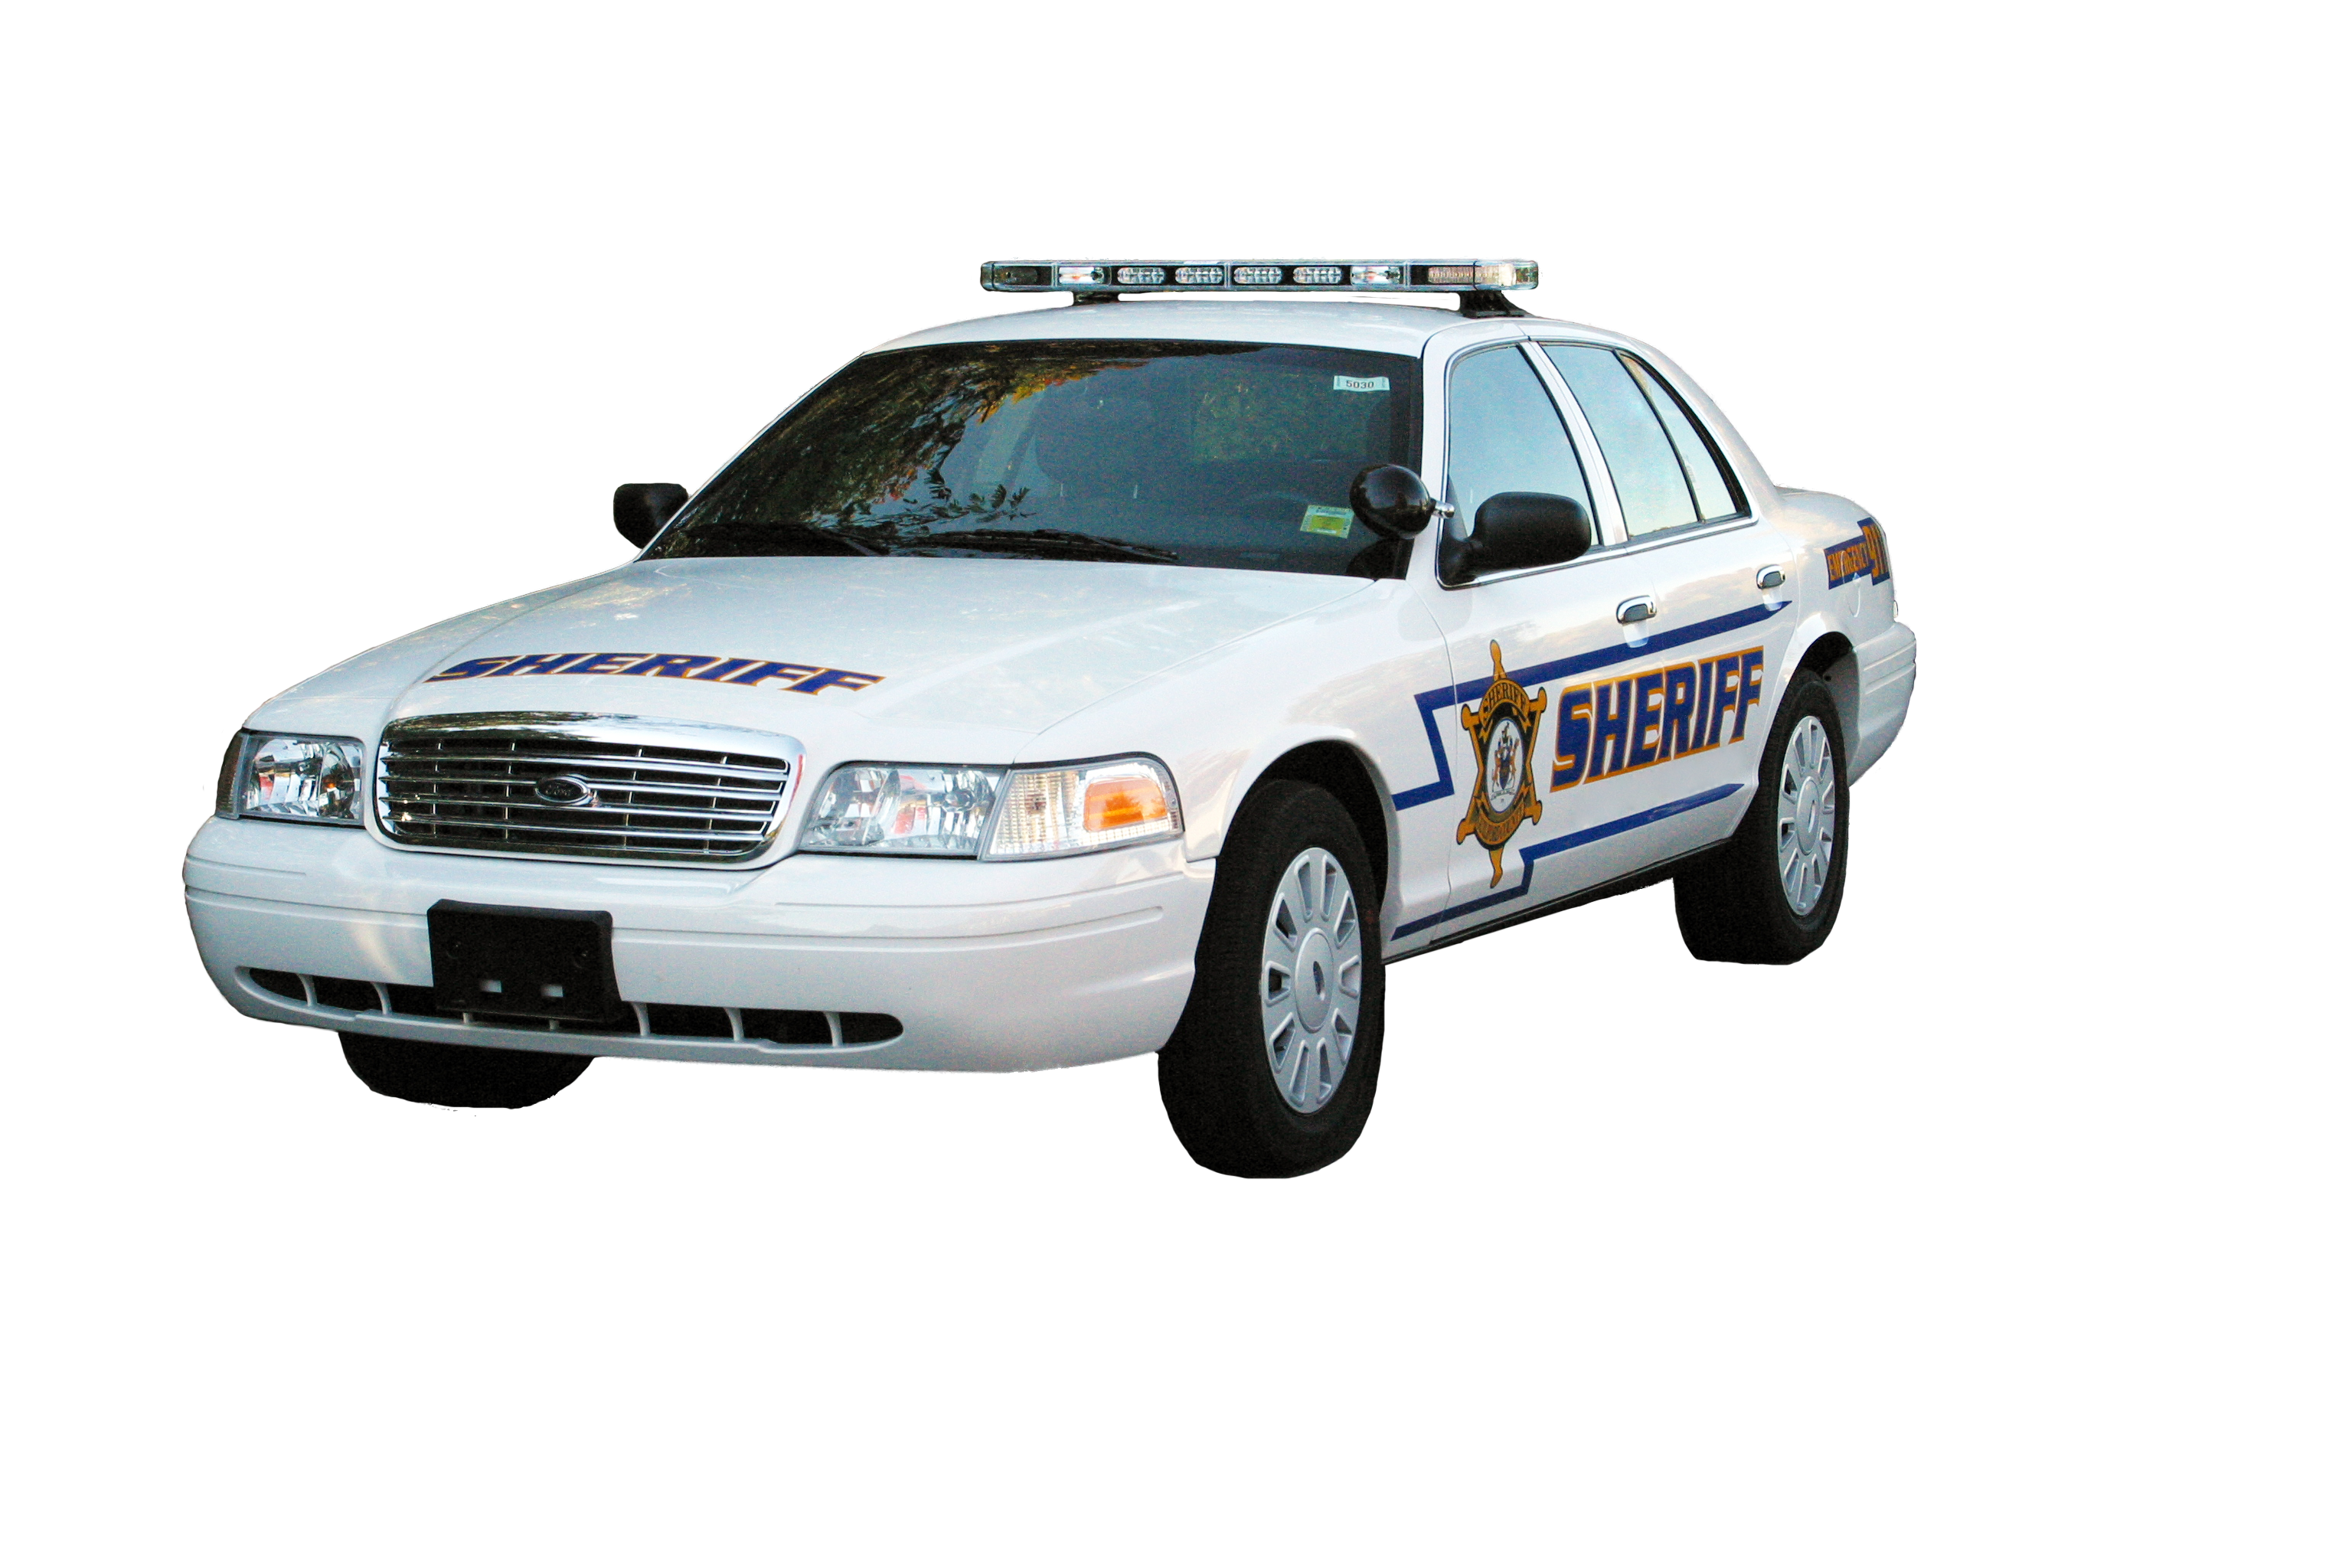 Police car front clipart image black and white Police vehicle png #28792 - Free Icons and PNG Backgrounds image black and white